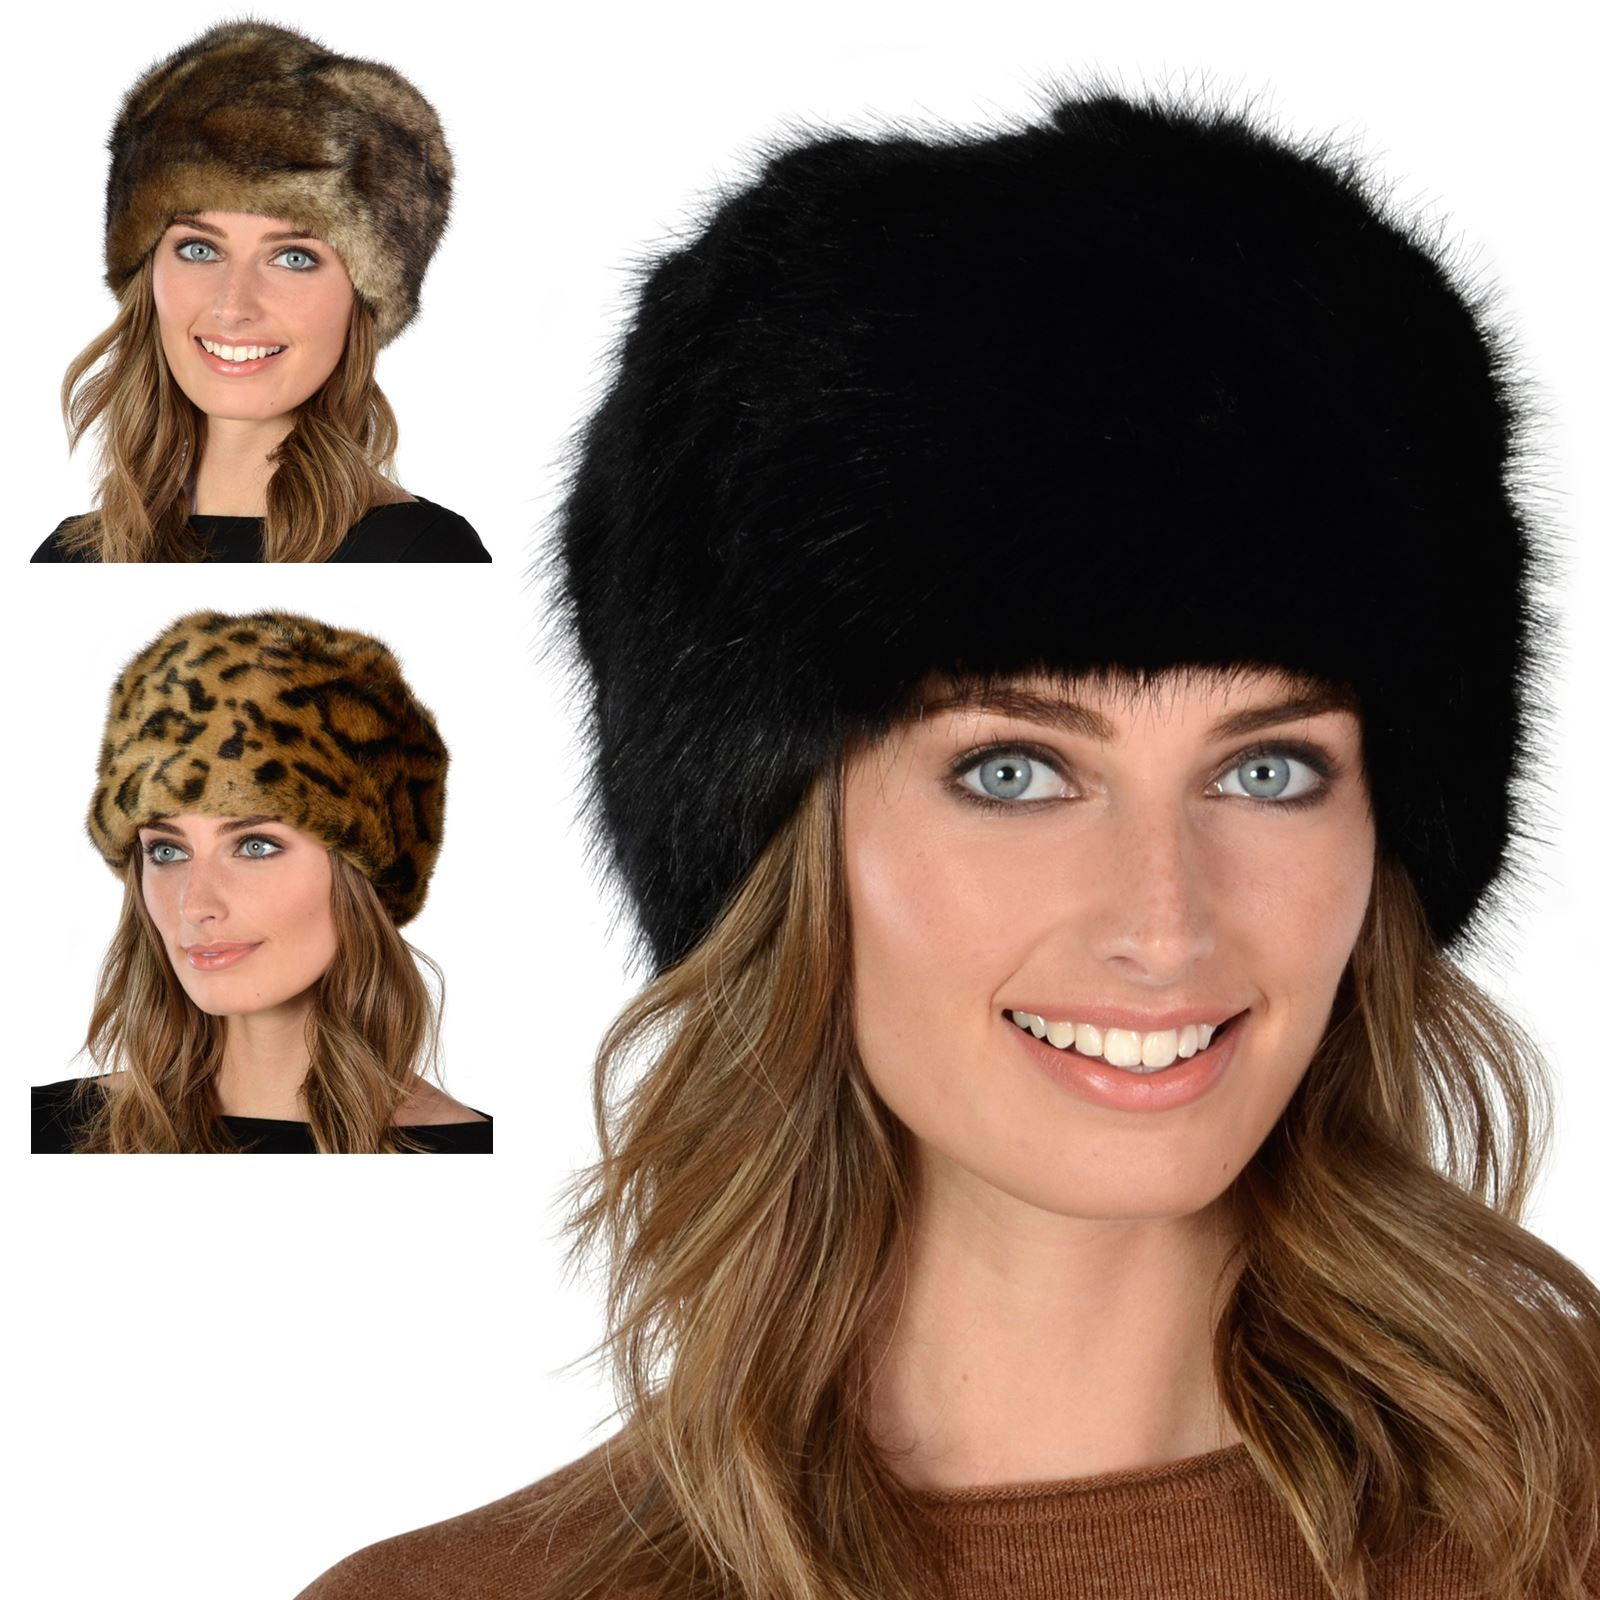 Details about New Ladies Super Soft Stylish Faux Fur Russian Womens Warm  Winter Cossack Hat 5ea30bee68a